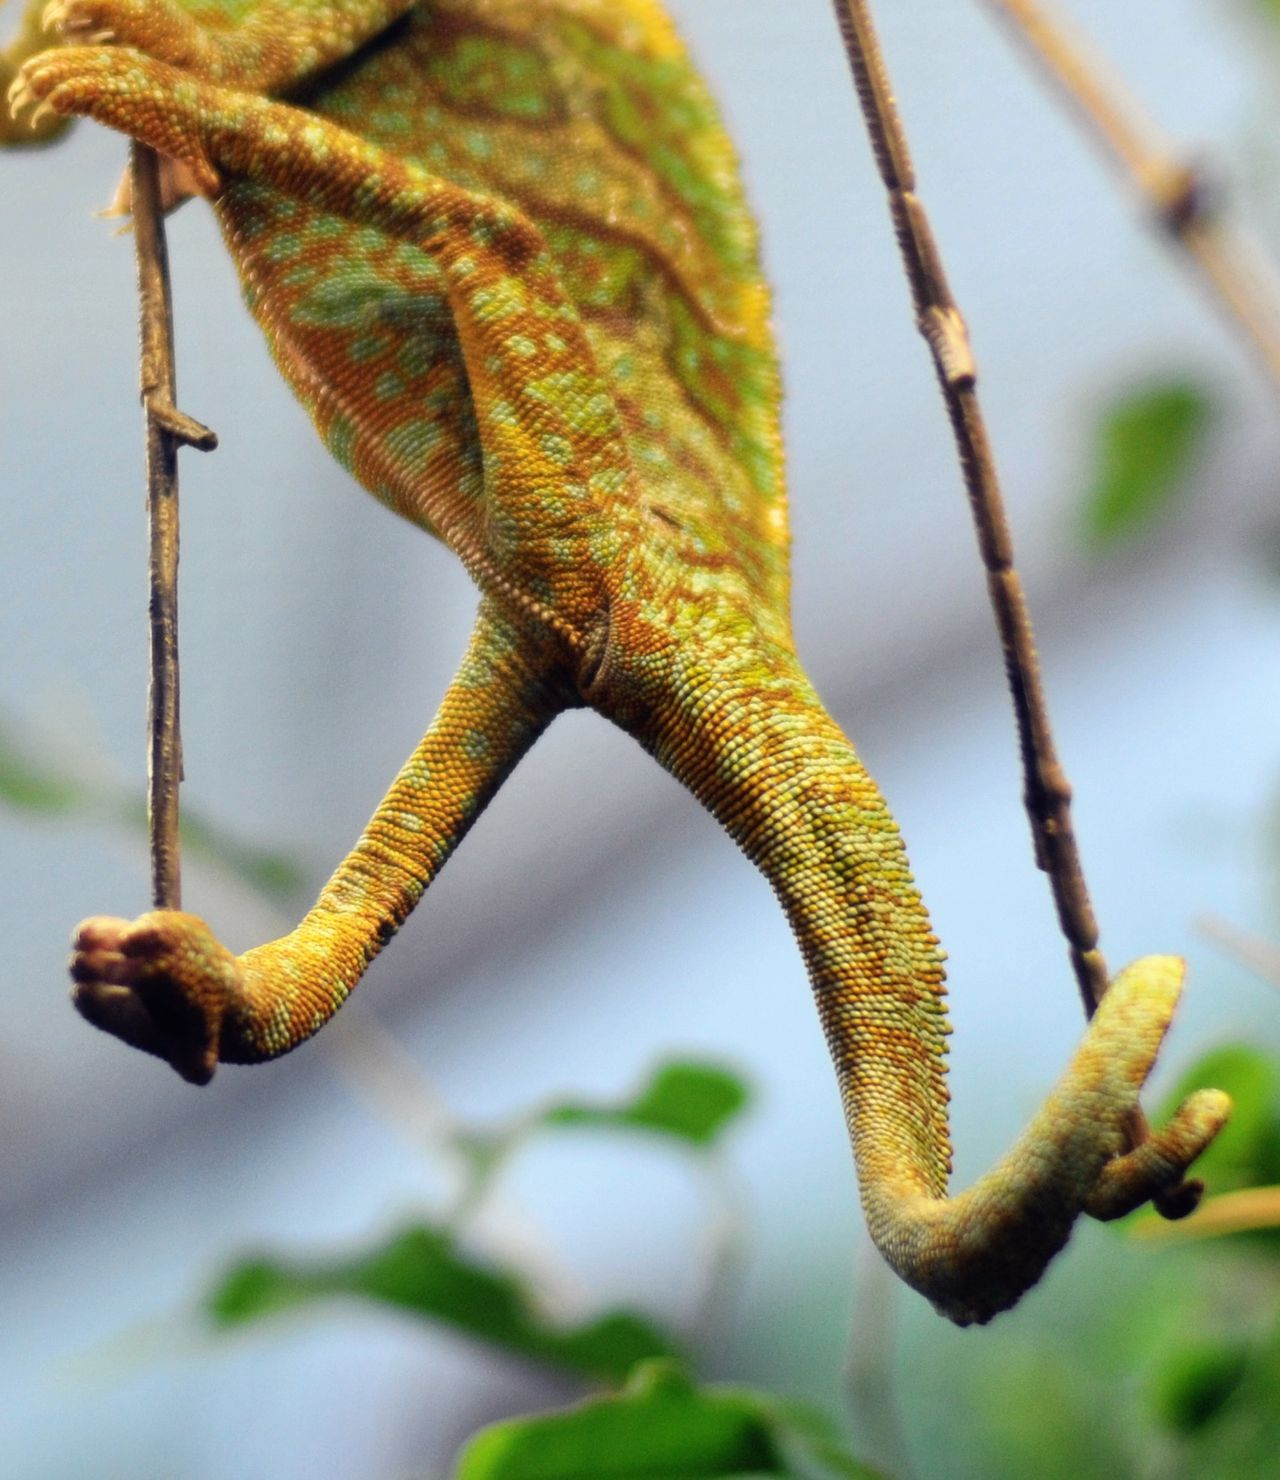 Animal Animal Themes Animal Wildlife Animals In The Wild Beauty In Nature Branch Camouflage Chameleon Close-up Day Escape EyeEm Best Shots EyeEm Gallery EyeEm Nature Lover Grip Leaf Lizard Nature No People One Animal Outdoors Reptile Scales Wildlife Wildlife & Nature